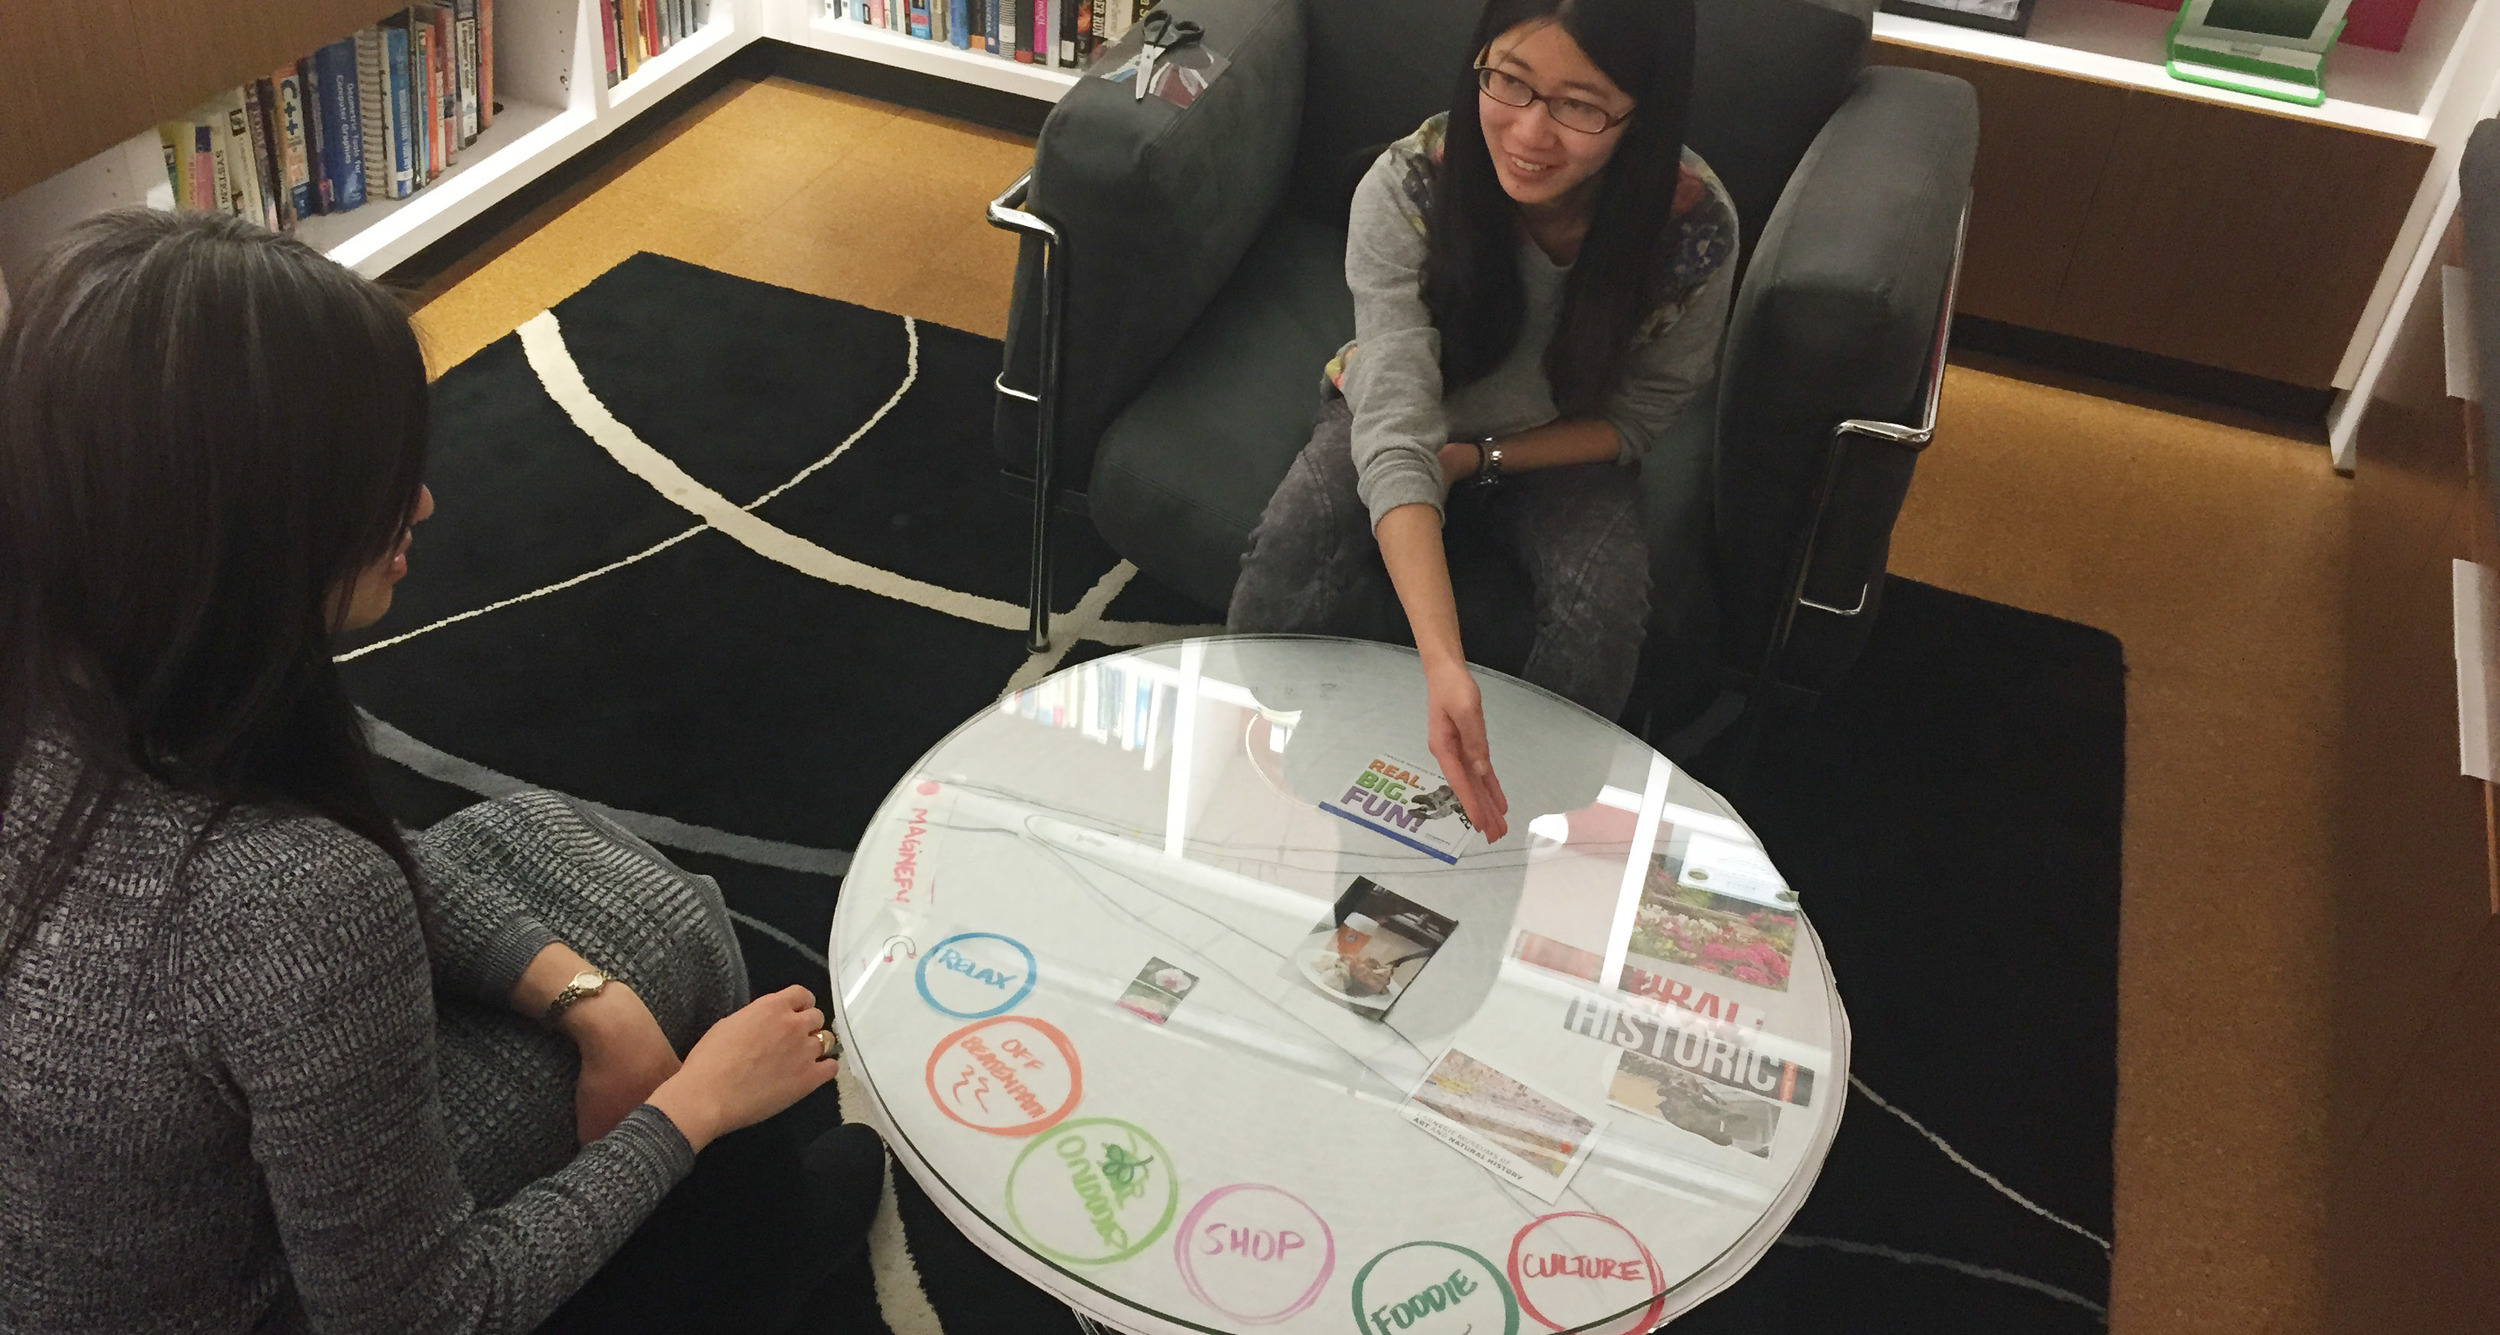 An interactive table at the hotel where guests can pick and choose tourist attractions according to their interests.